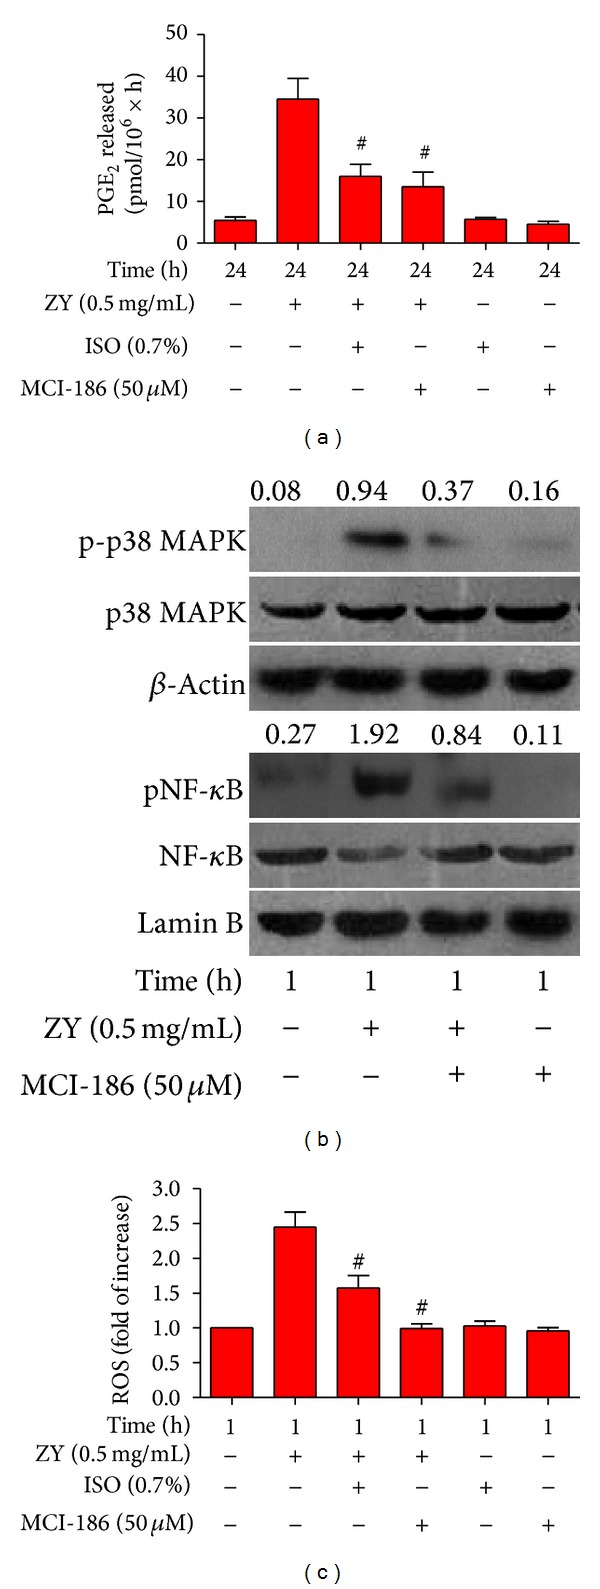 0.7% ISO reduces ZY-induced ROS generation; ROS is essential to ZY-induced activation of p38 MAPK and NF- κ B, as well as PGE 2 production. (a) At 0.5 h after KCs (1 × 10 6 cells/well in six-well culture plates) were treated with ZY or CM (Ctrl) for 0.5 h with or without MCI-186 (50 μ M) pretreatment for 0.5 h, the cells were exposed to RA with or without 0.7% ISO for another 0.5 h. The KCs were continuously treated with ZY (0.5 mg/mL) or Ctrl for 24 h. RIA was performed to detect PGE 2 production. (b) The KCs with or without MCI-186 (50 μ M) pretreatment for 0.5 h were treated with ZY (0.5 mg/mL) or Ctrl for 1 h. Western blot was performed to determine the phosphorylation of p38 MAPK (Thr180/Tyr182) and NF- κ B (Ser536). β -Actin and lamin B were used as the internal controls. The ratios from p-p38 MAPK to p38 MAPK and from pNF- κ B to NF- κ B are indicated above the bands. (c) The KCs (5 × 10 4 cells/well in 96-well culture plates) with or without MCI-186 (50 μ M) pretreatment for 0.5 h were stimulated with ZY (0.5 mg/mL) for 1 h with or without 0.7% ISO posttreatment for 0.5 h. DCFH-DA was used to assess the production of intracellular ROS. Representative data are from three independent experiments and expressed as mean ± SD. * P